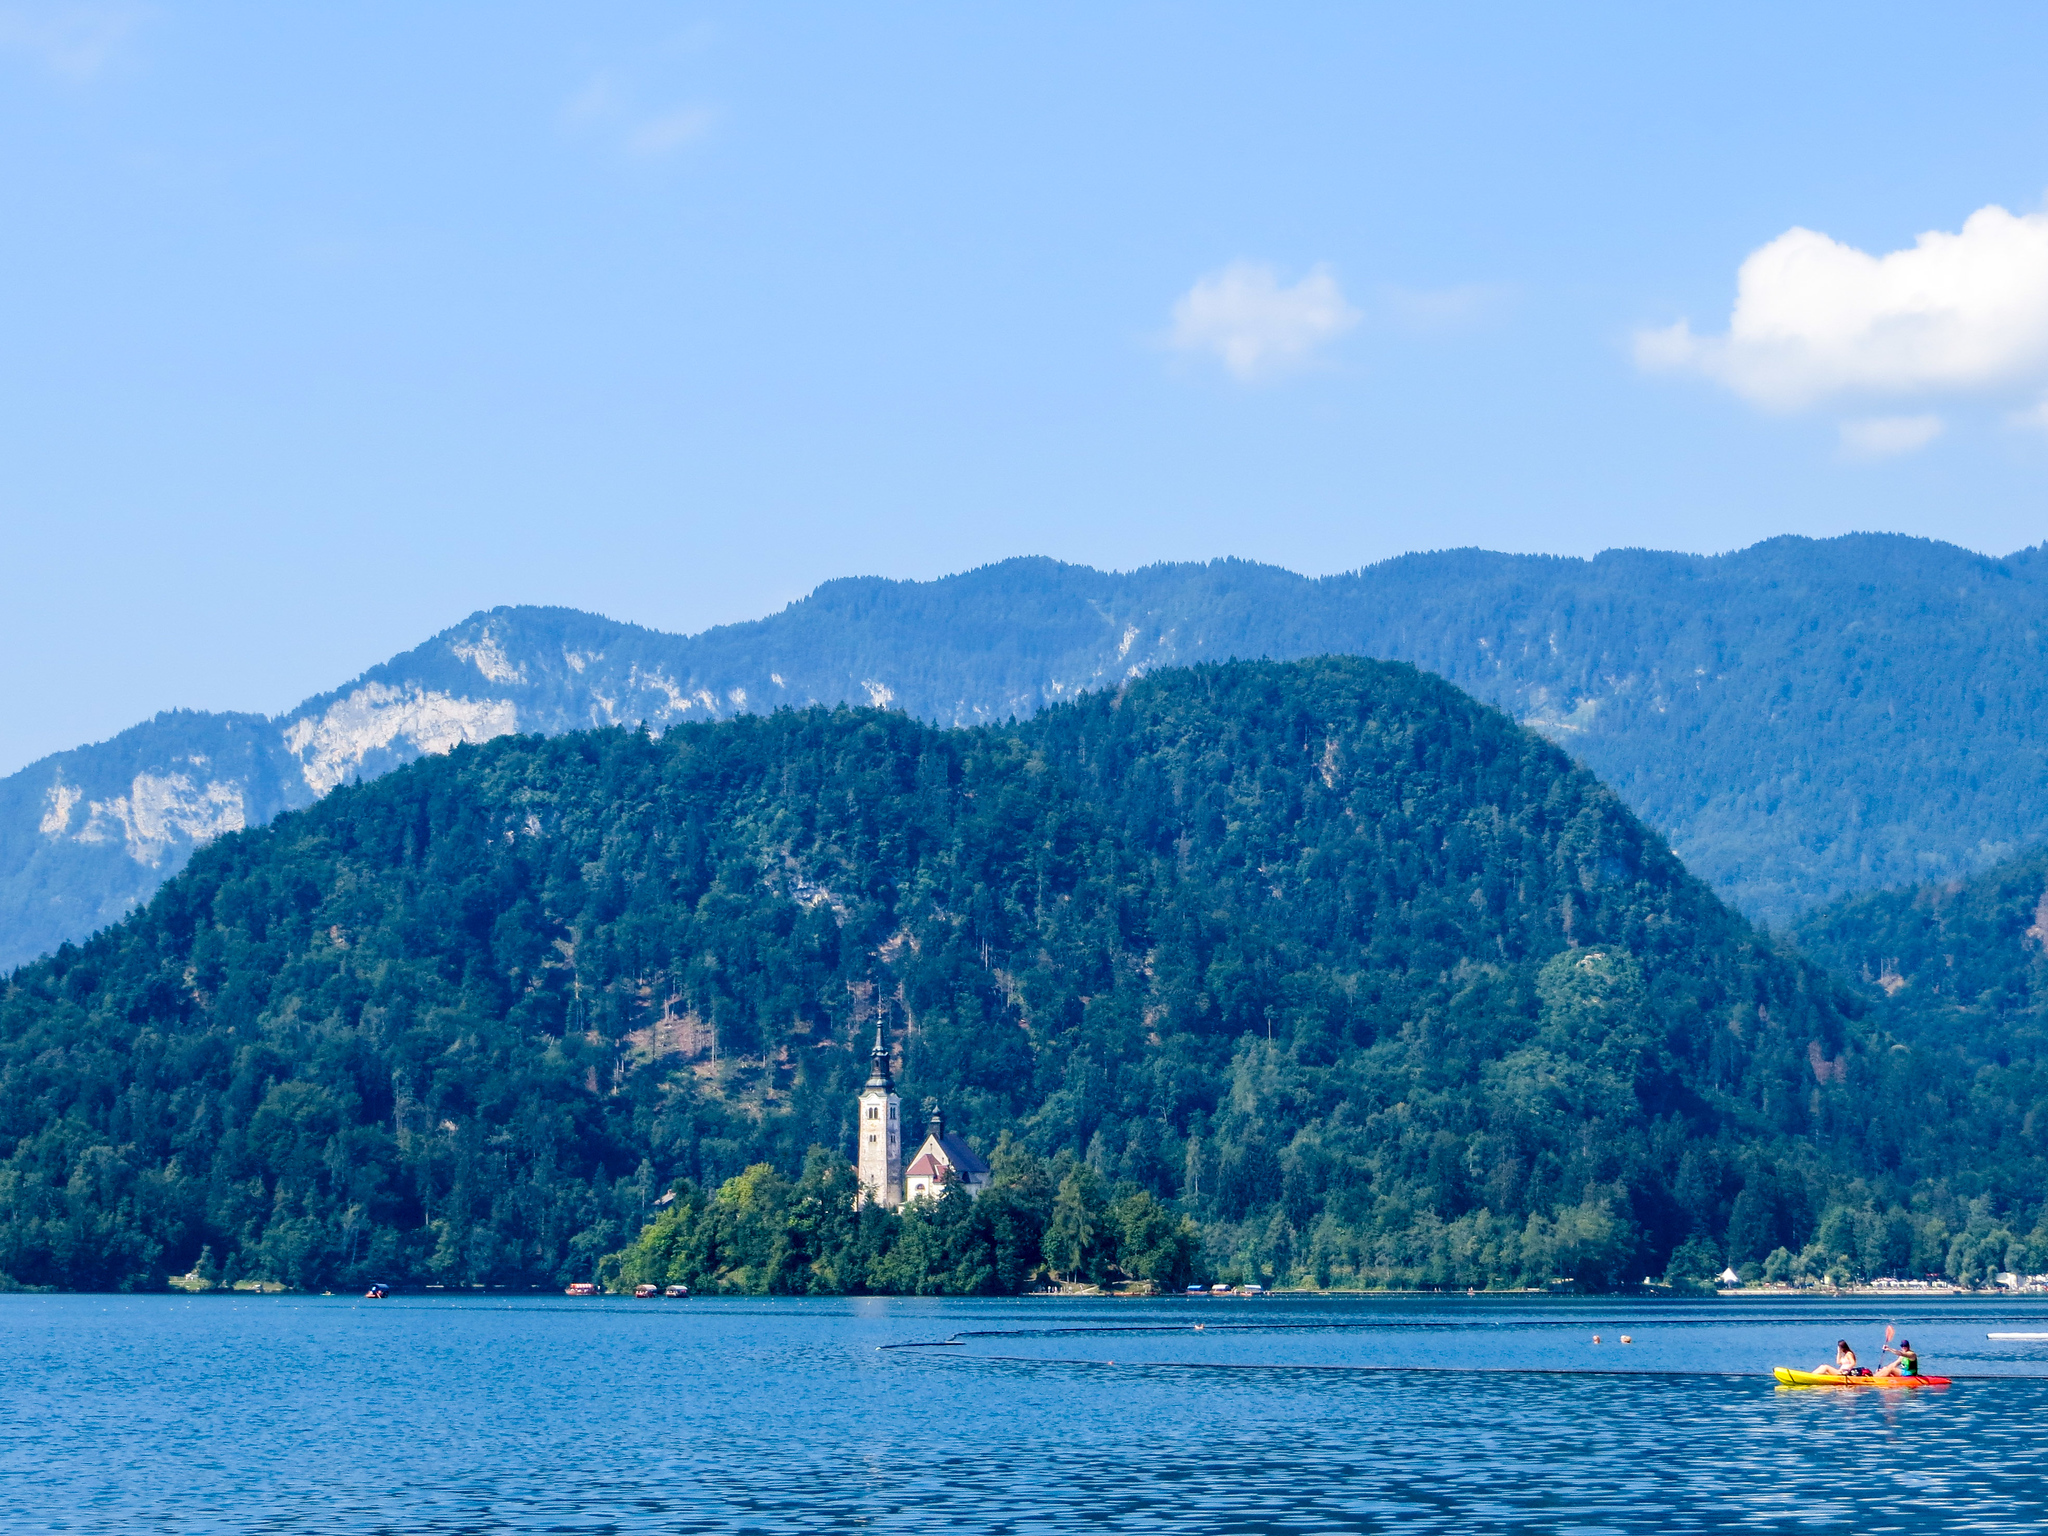 bled is a great option for your first trip to europe